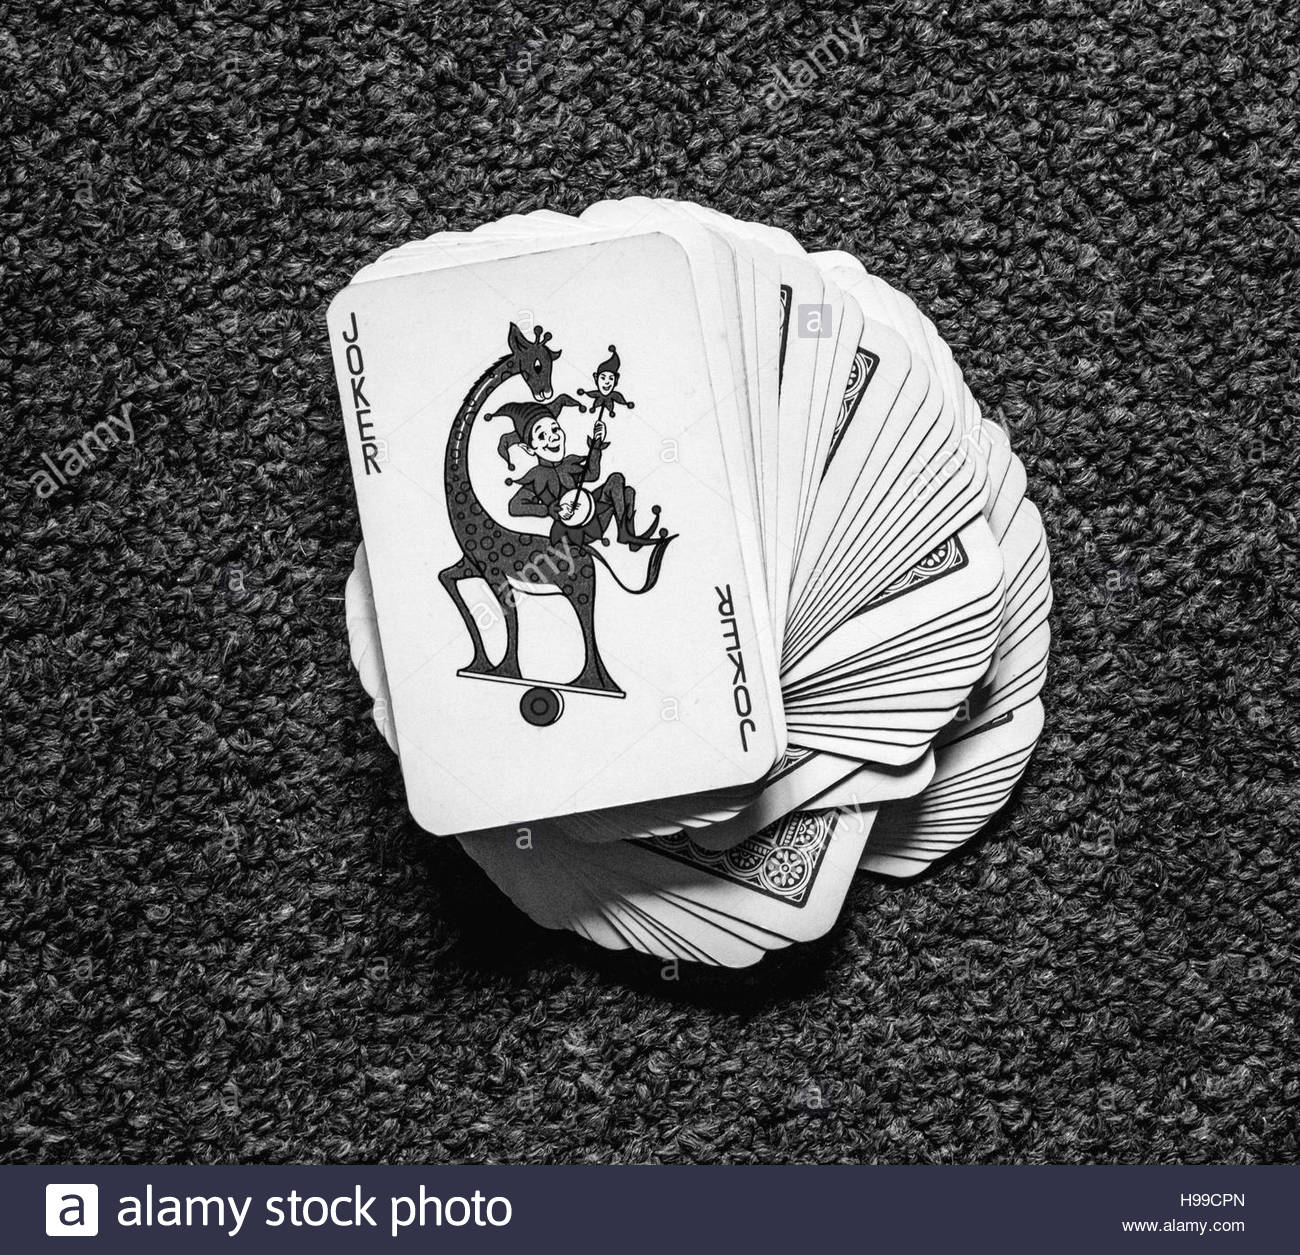 Joker jeu de cartes noir et blanc photo stock